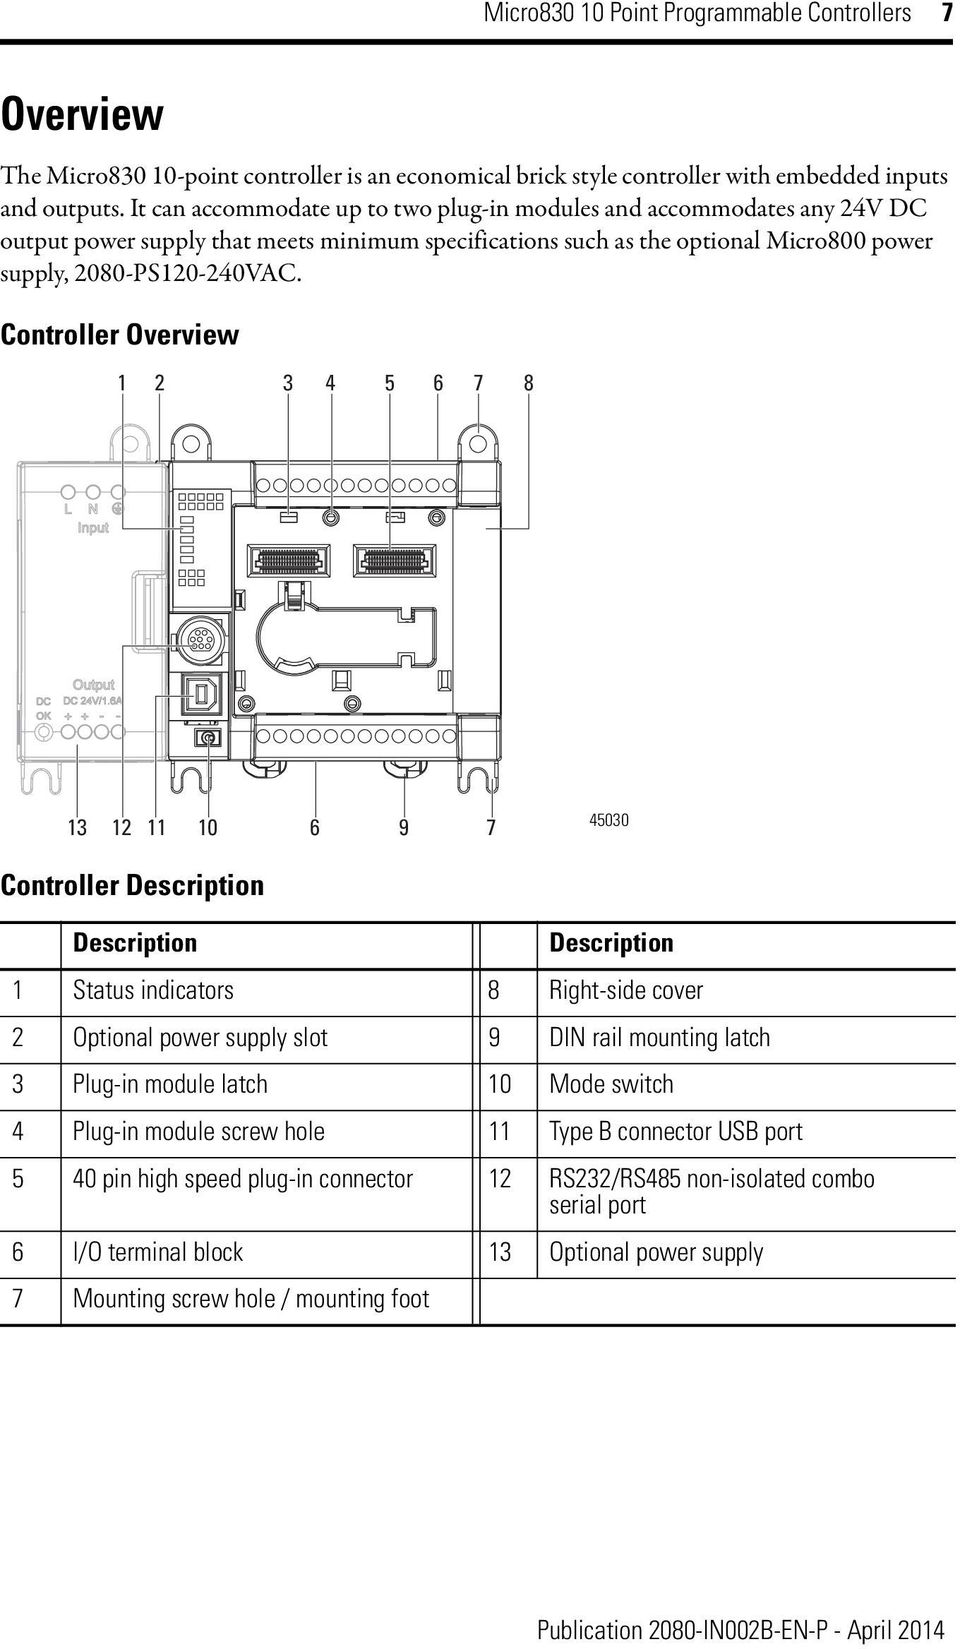 Controller Overview 1 2 3 4 5 6 7 8 13 12 11 10 6 9 7 45030 Controller Description Description Description 1 Status indicators 8 Right-side cover 2 Optional power supply slot 9 DIN rail mounting